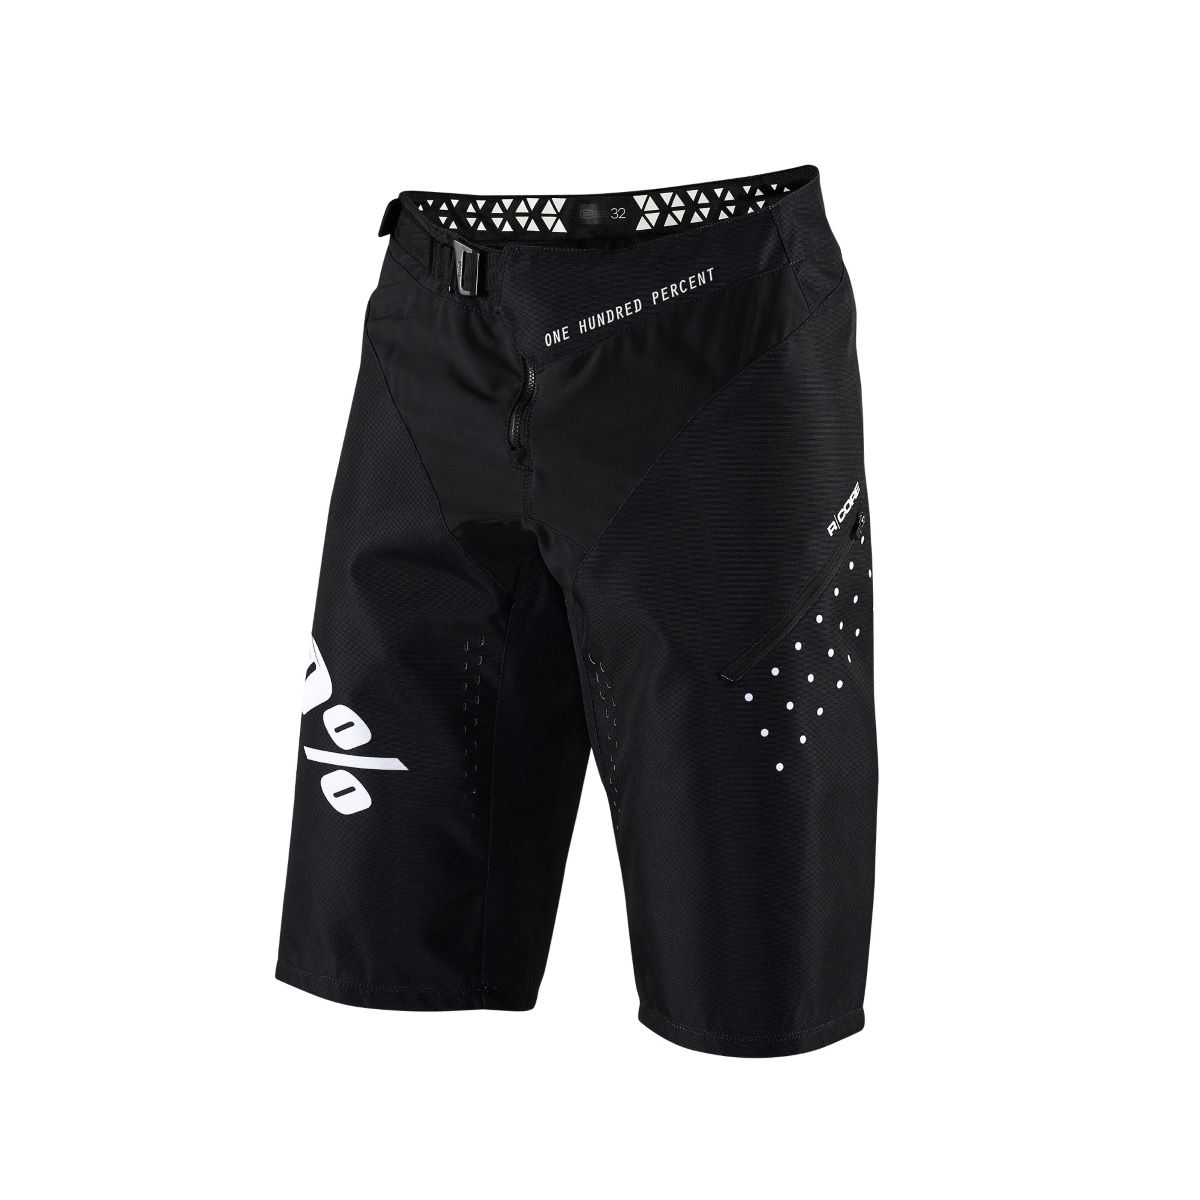 100% 100% R-Core Youth Shorts   Baggy Shorts